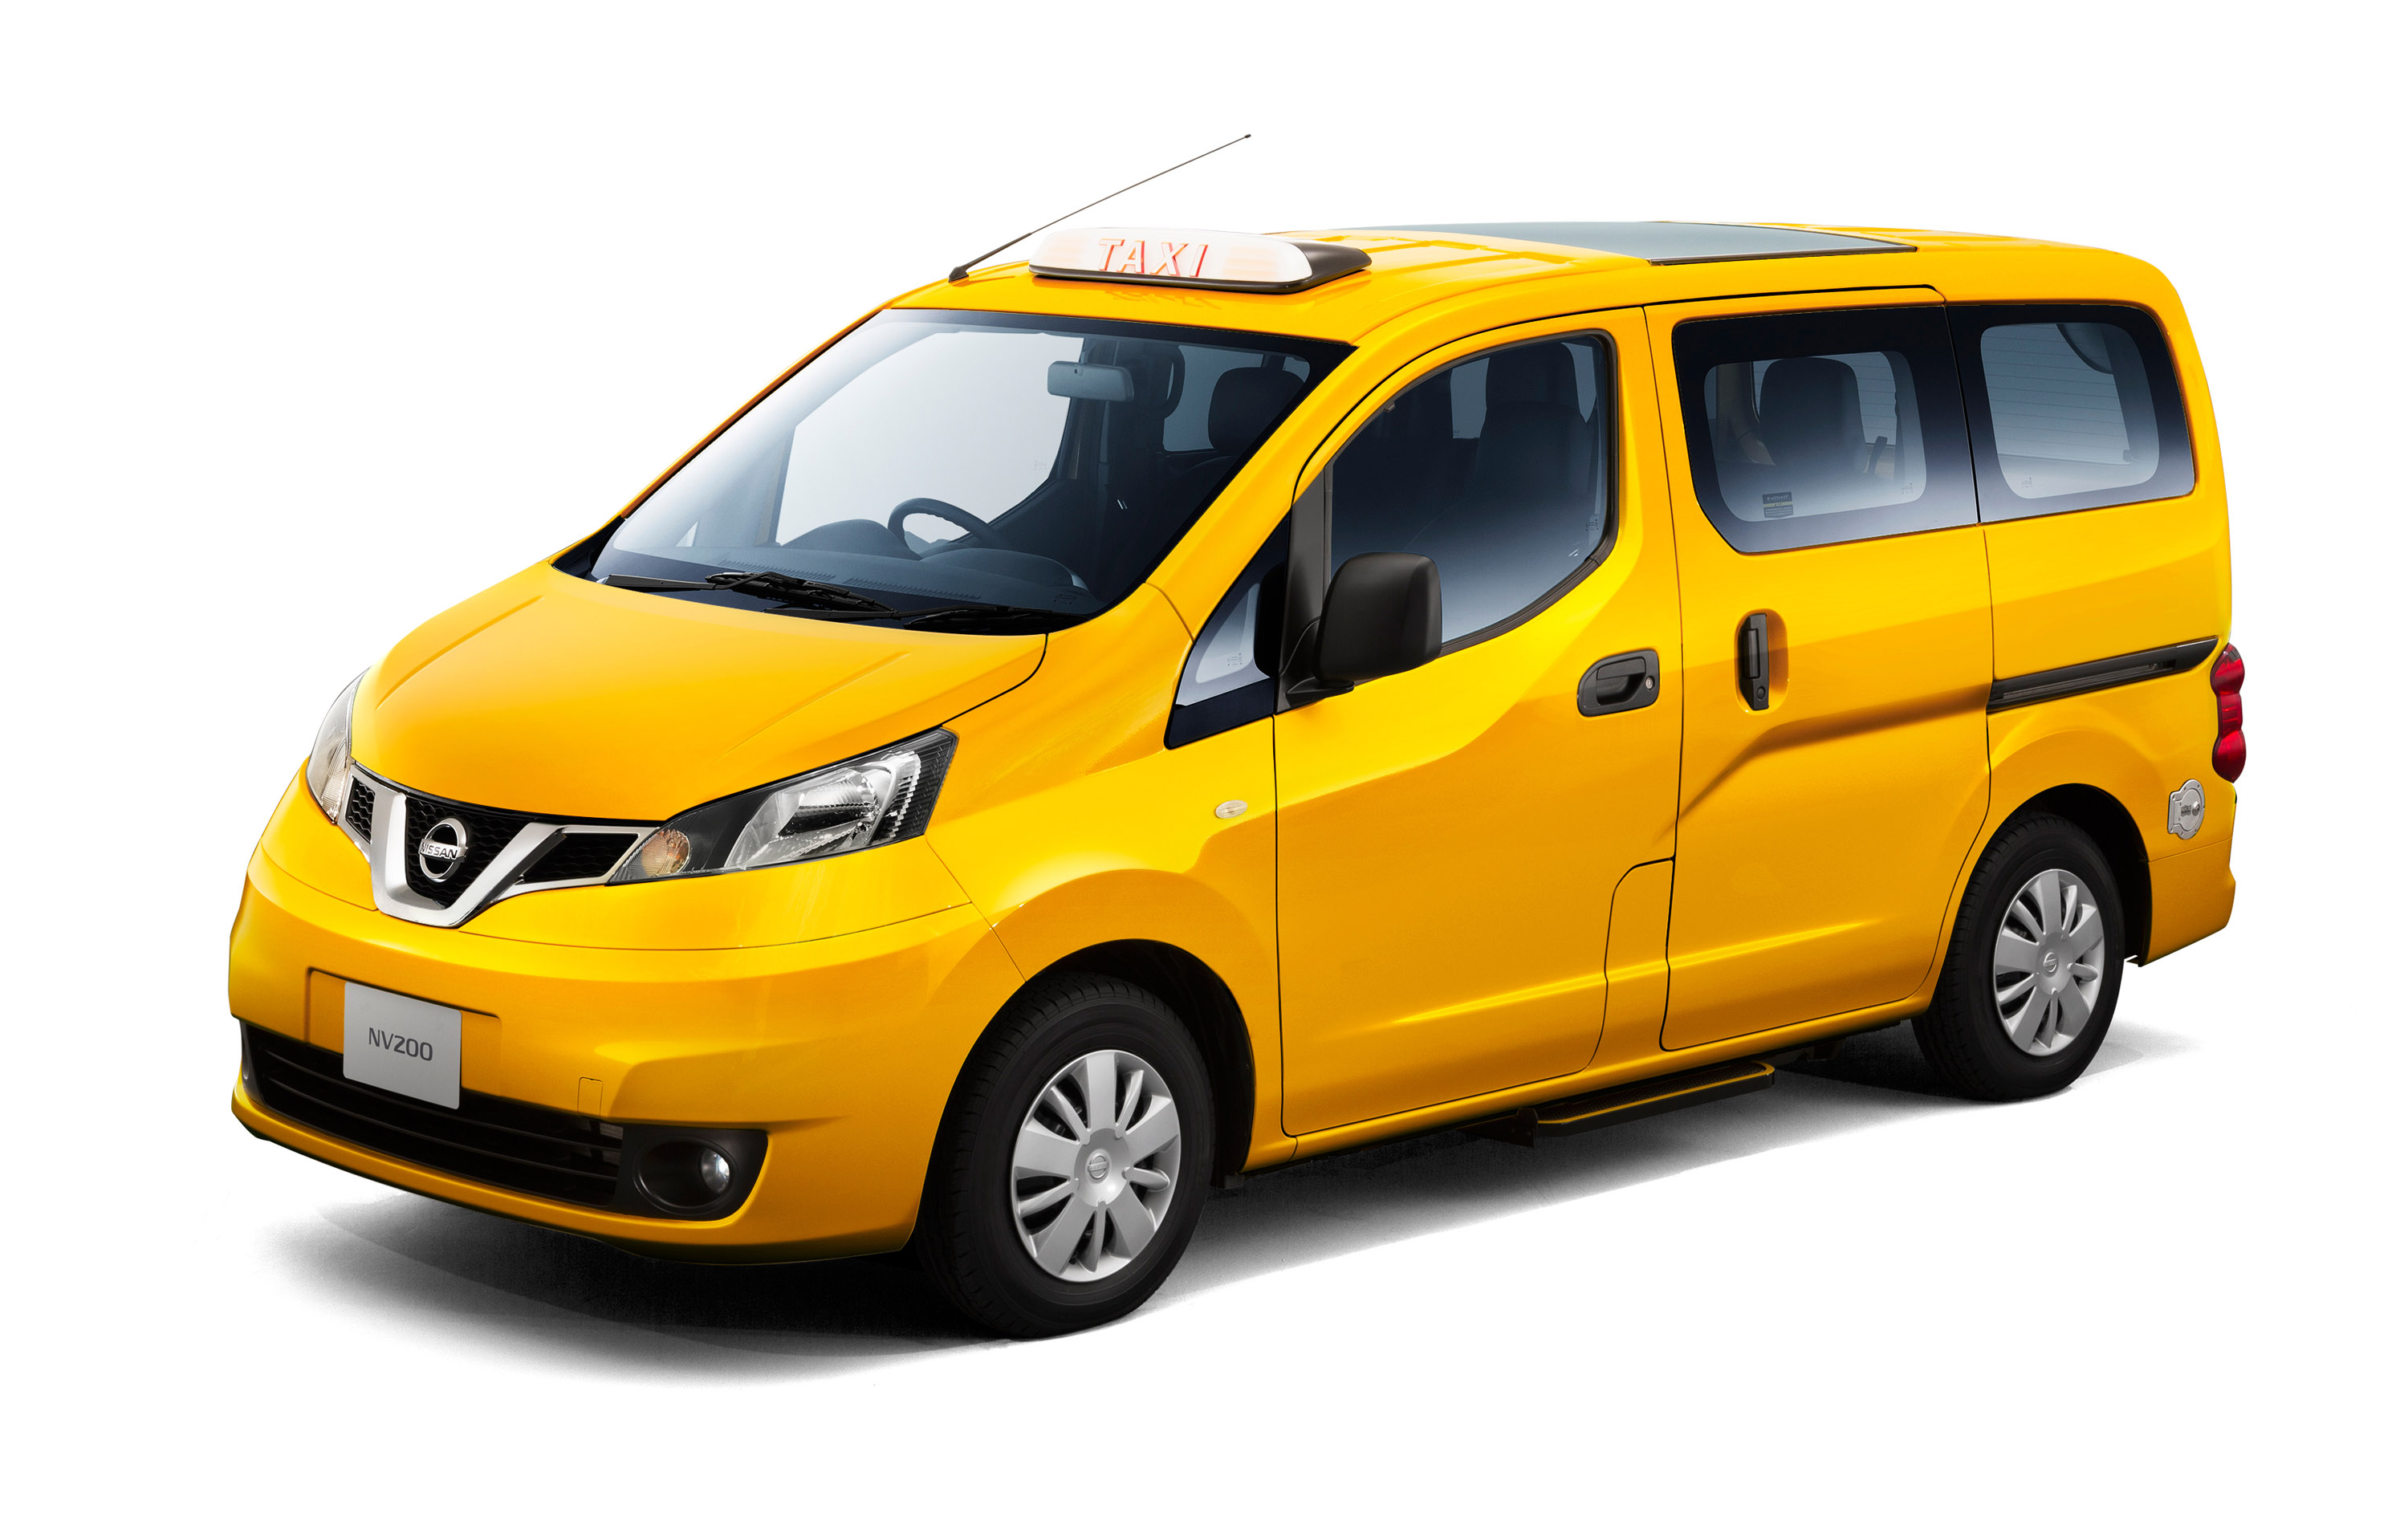 Car True Value >> Nissan Introduces its New Generation NV200 Taxi in Japan